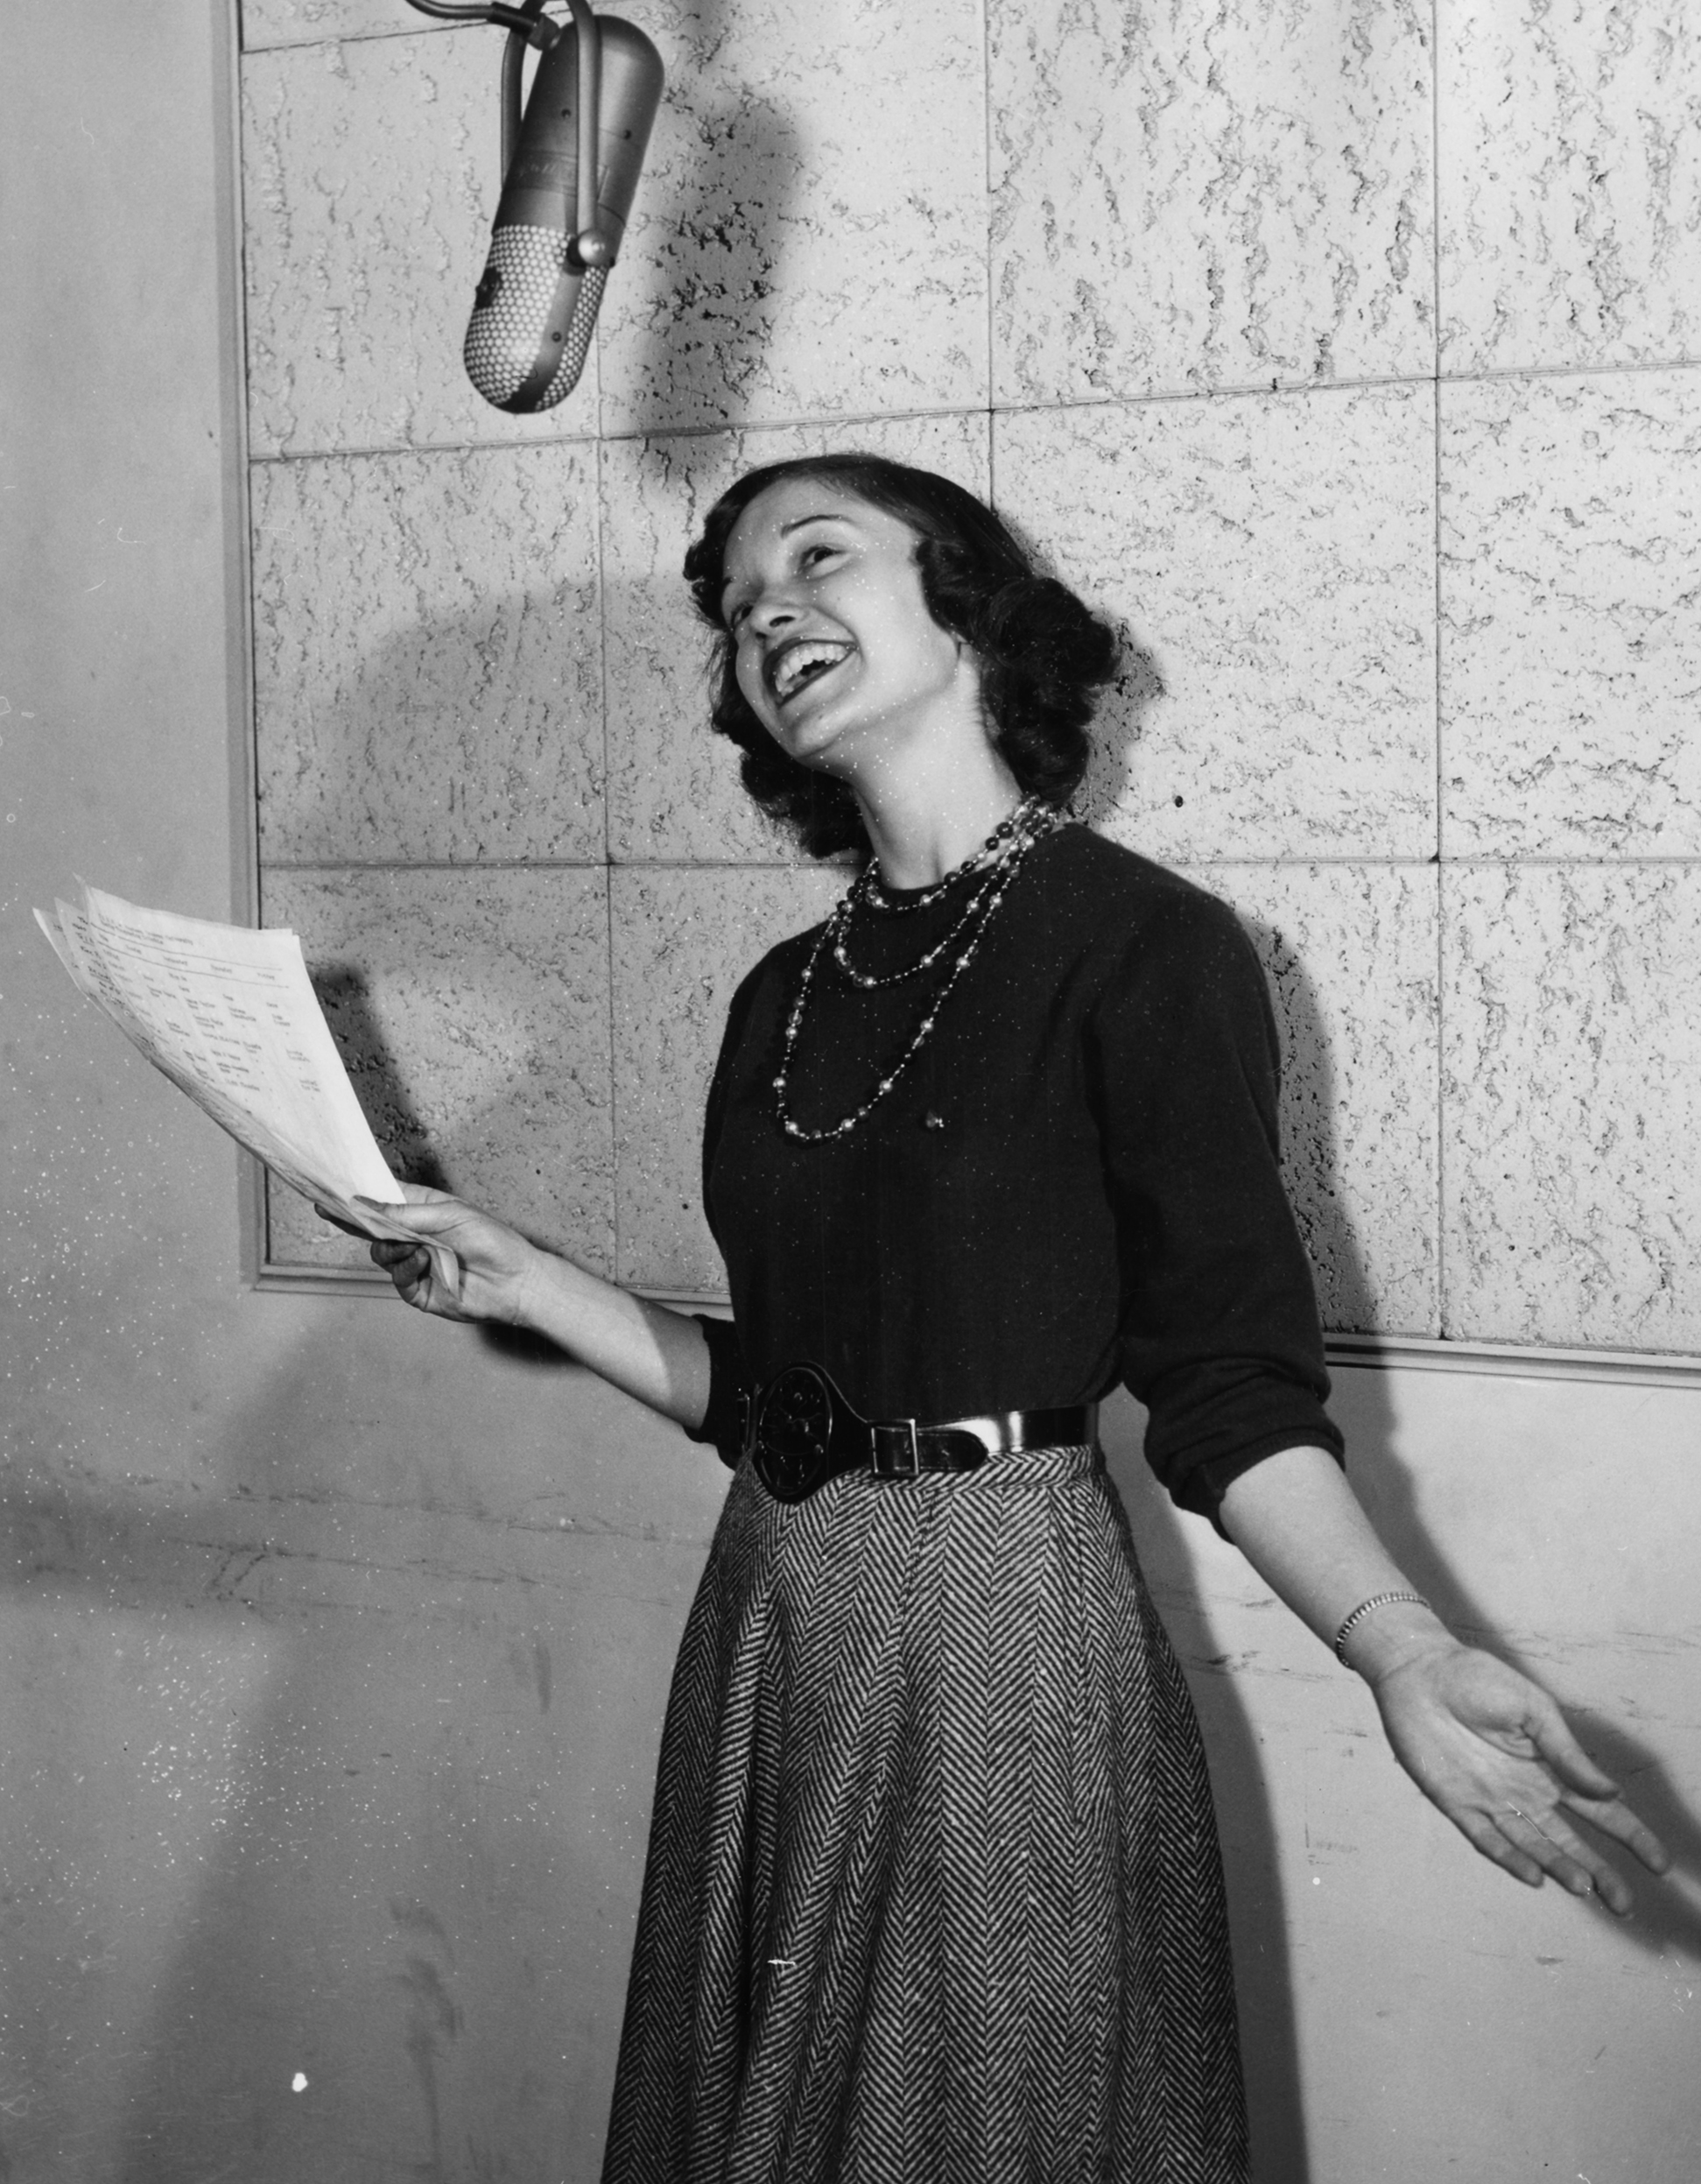 Black and white photograph of a woman named Jean Miller in the WRAR sound booth.